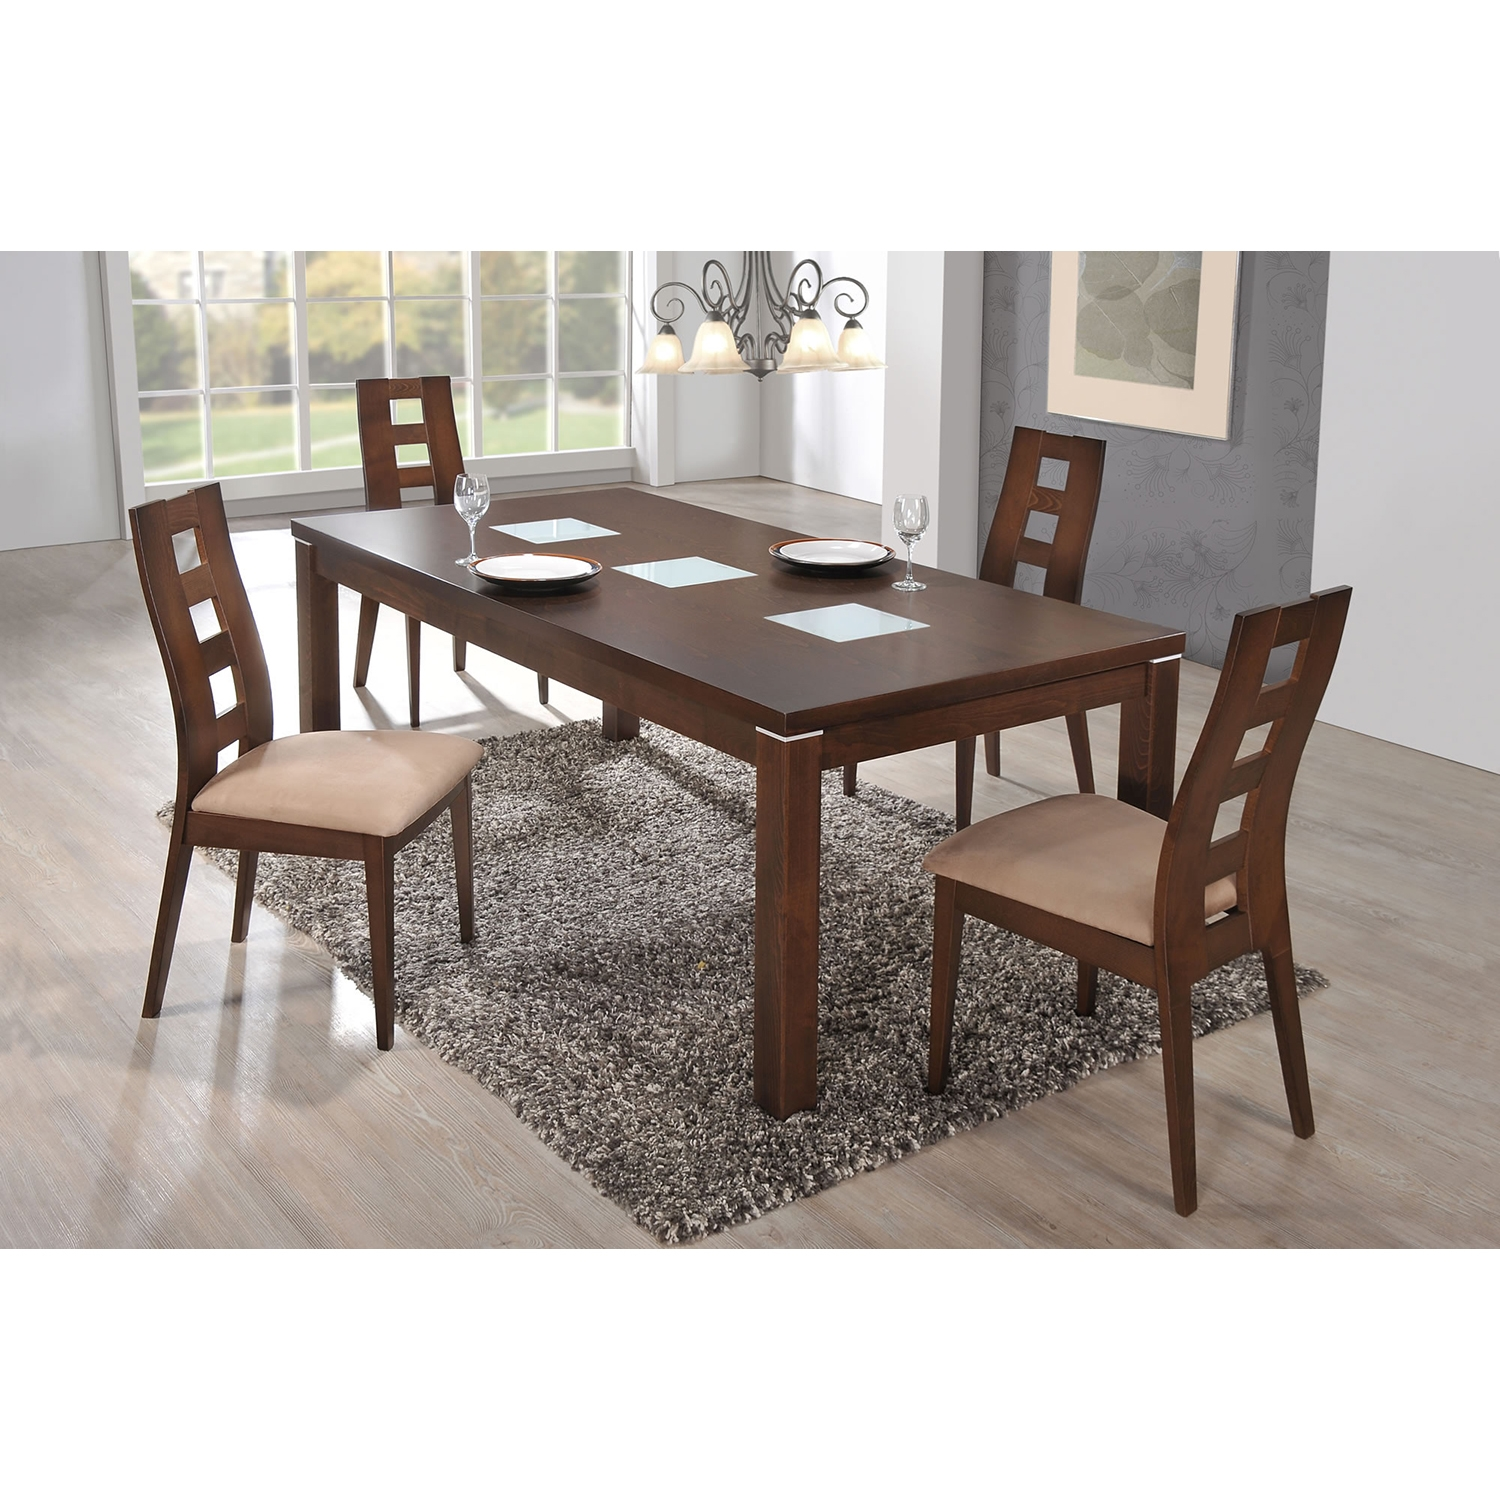 Amanda Dining Table in Burn Beech - GLO-D4930DT-M